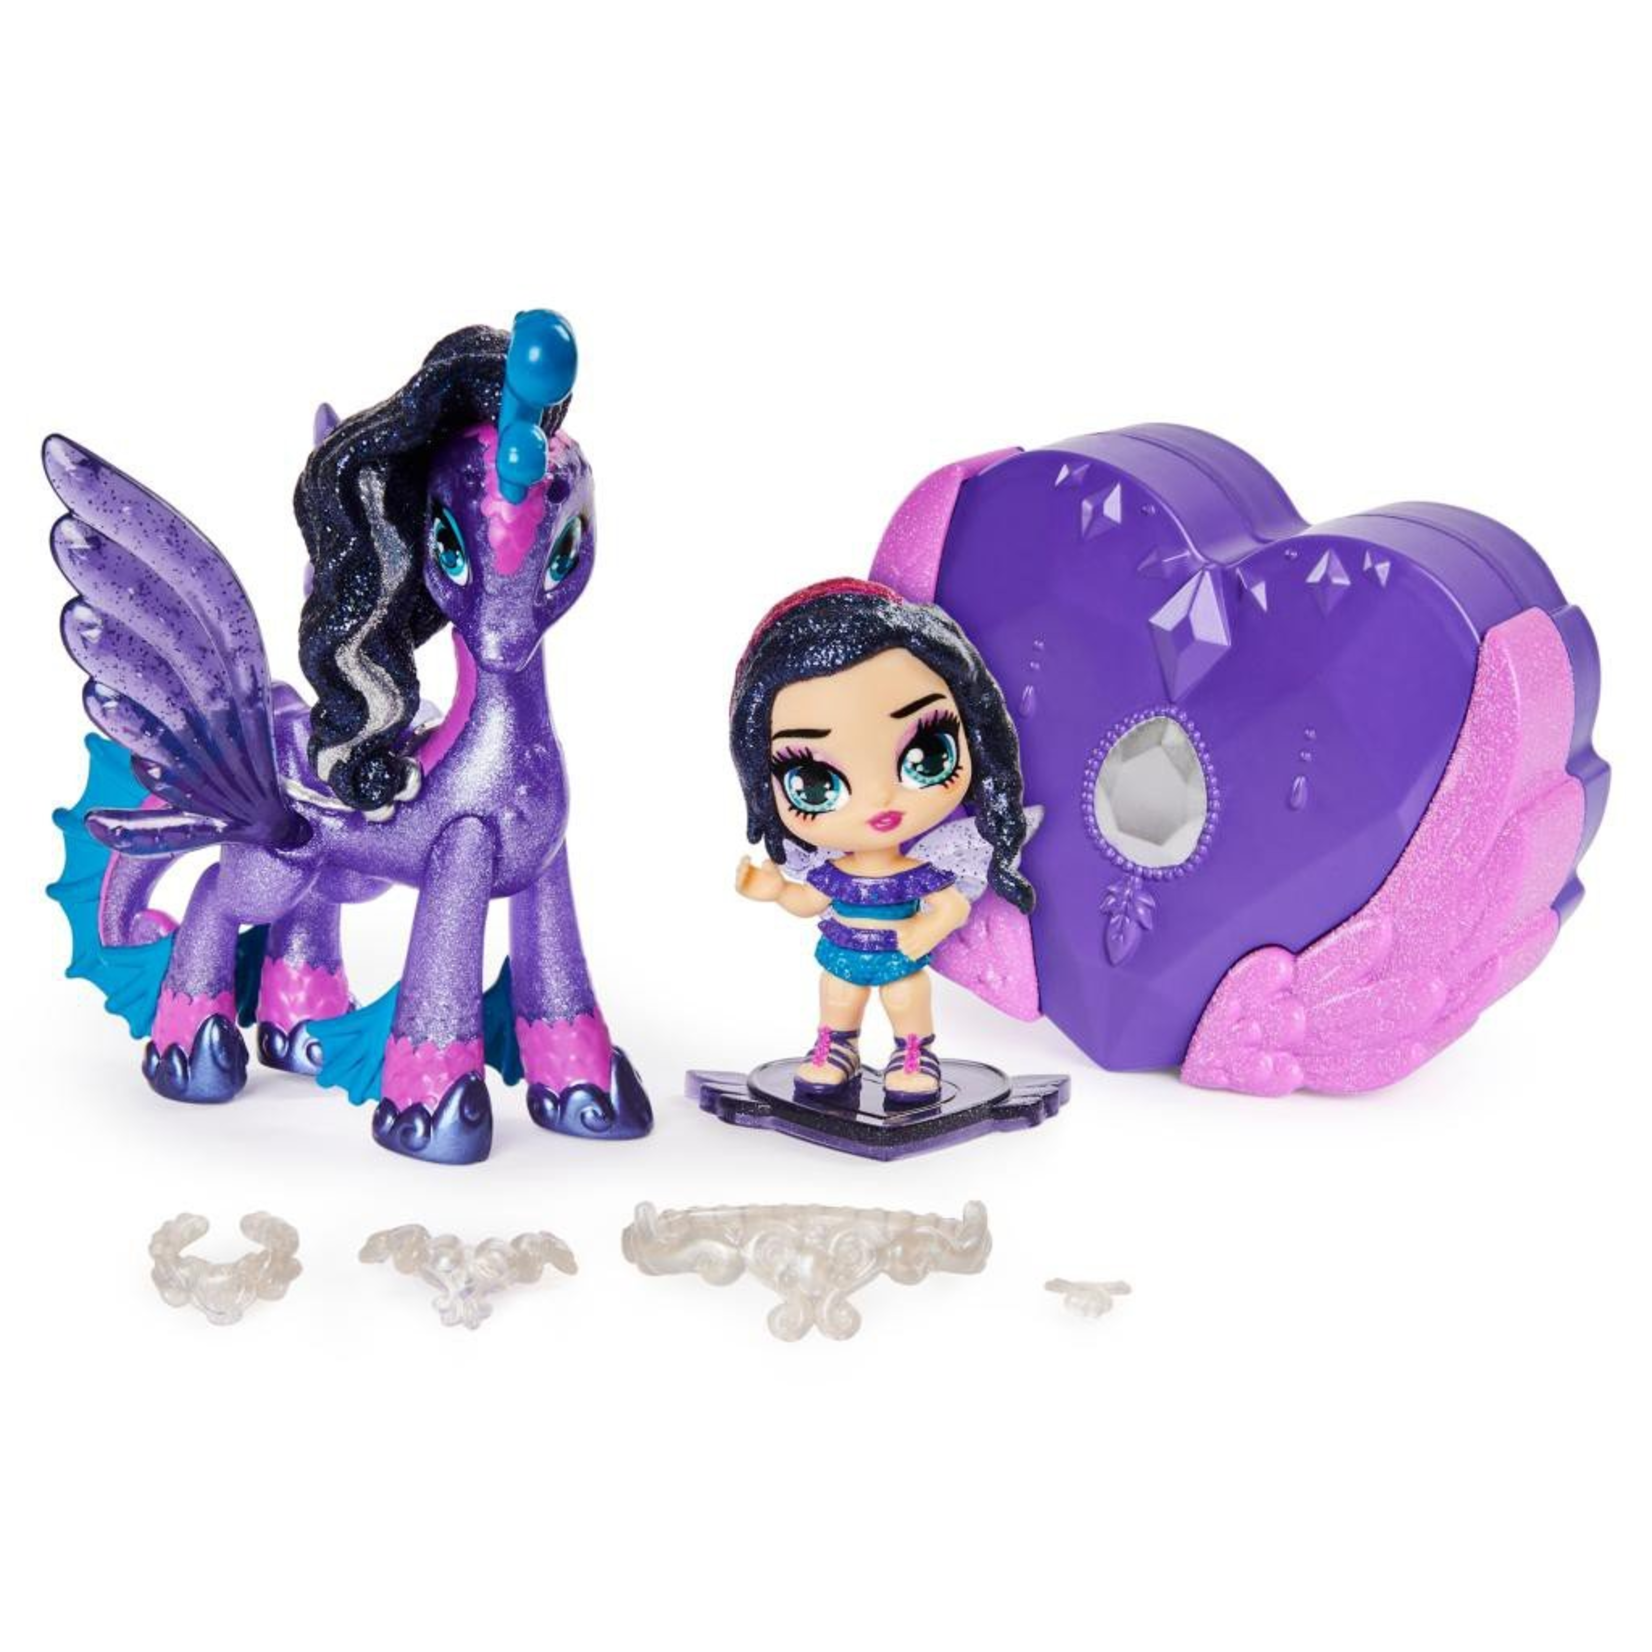 Spin Master Hatchimals Pixies Riders - Black Glitter Lilly